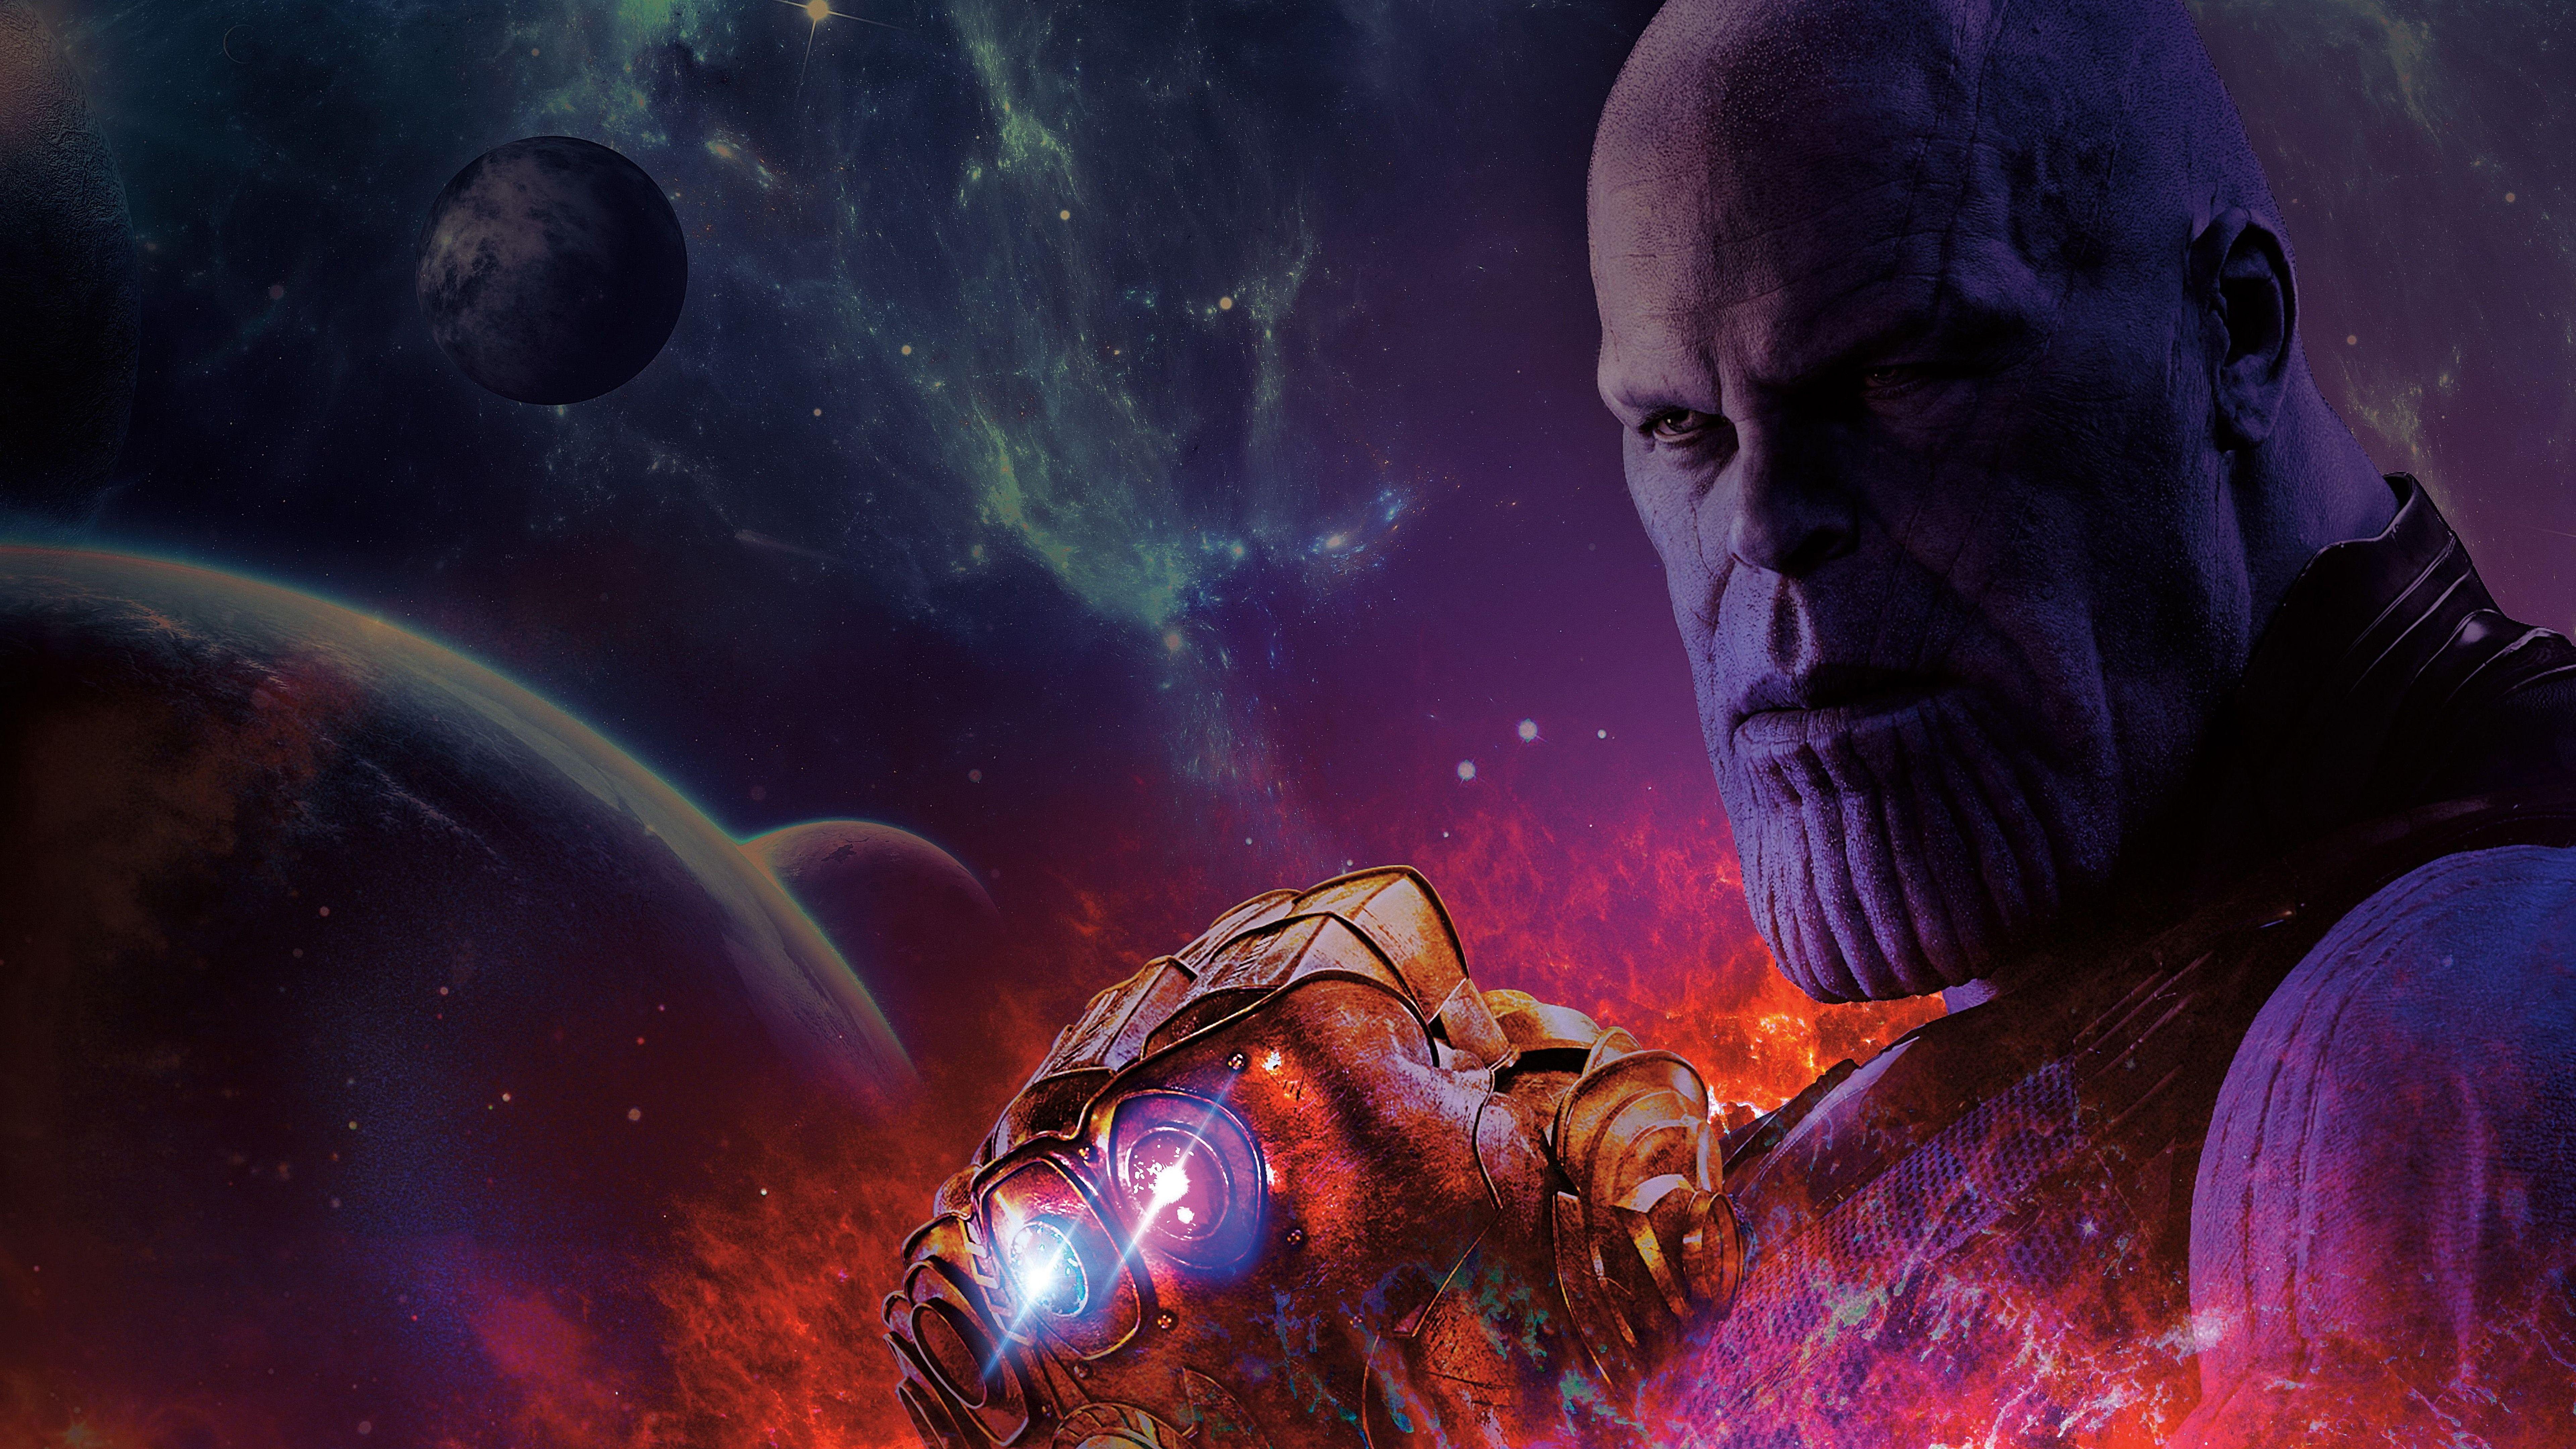 Thanos Hd Wallpaper: Thanos Infinity War Wallpapers